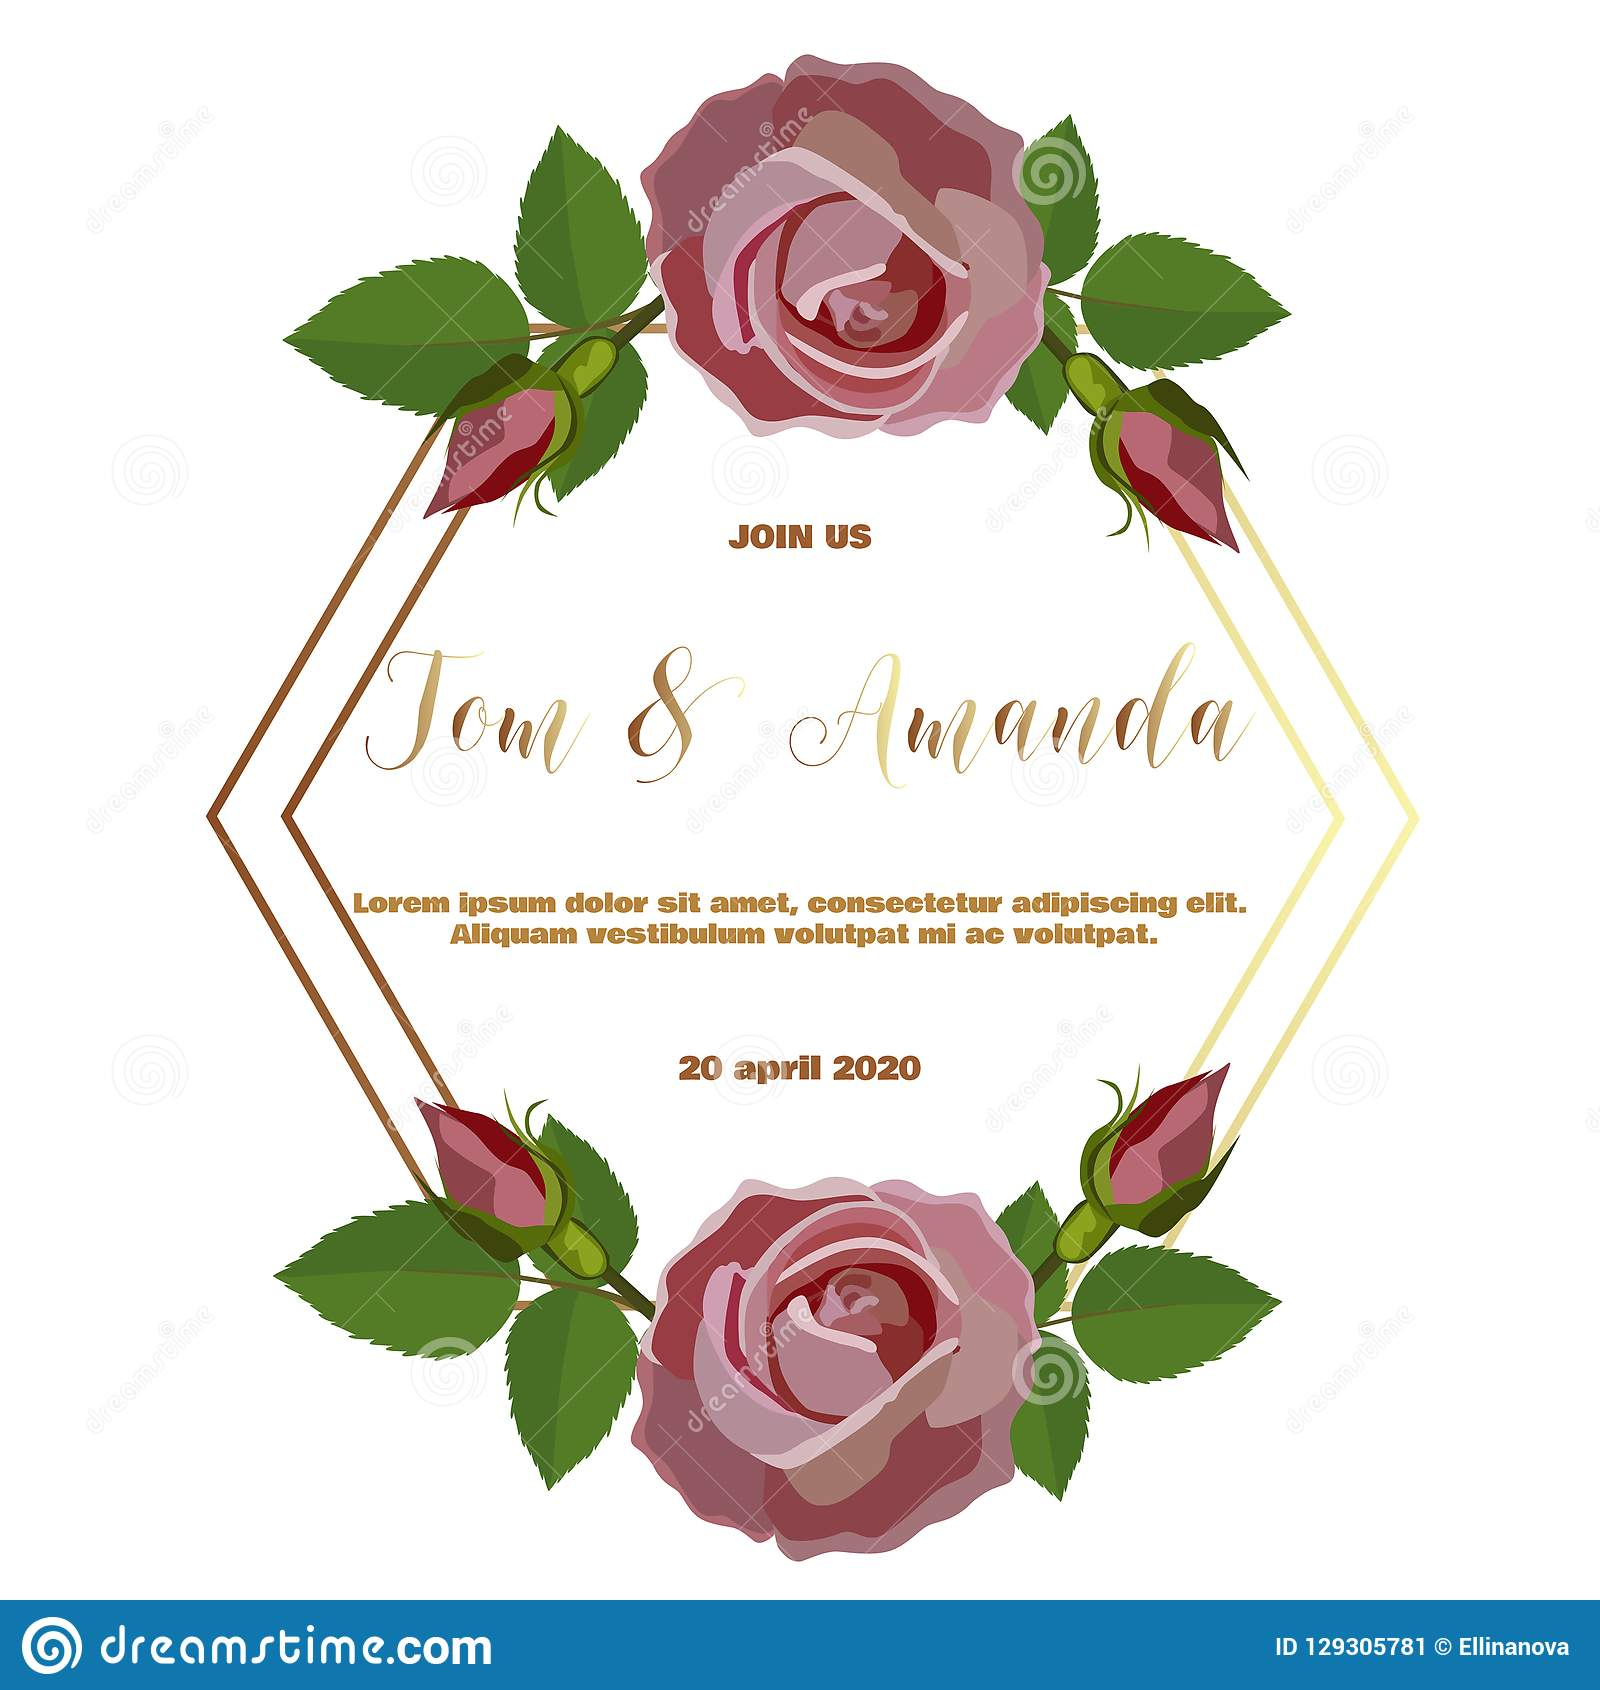 Floral Wedding Invitation Template With Rose And Leaf Stock Vector ...